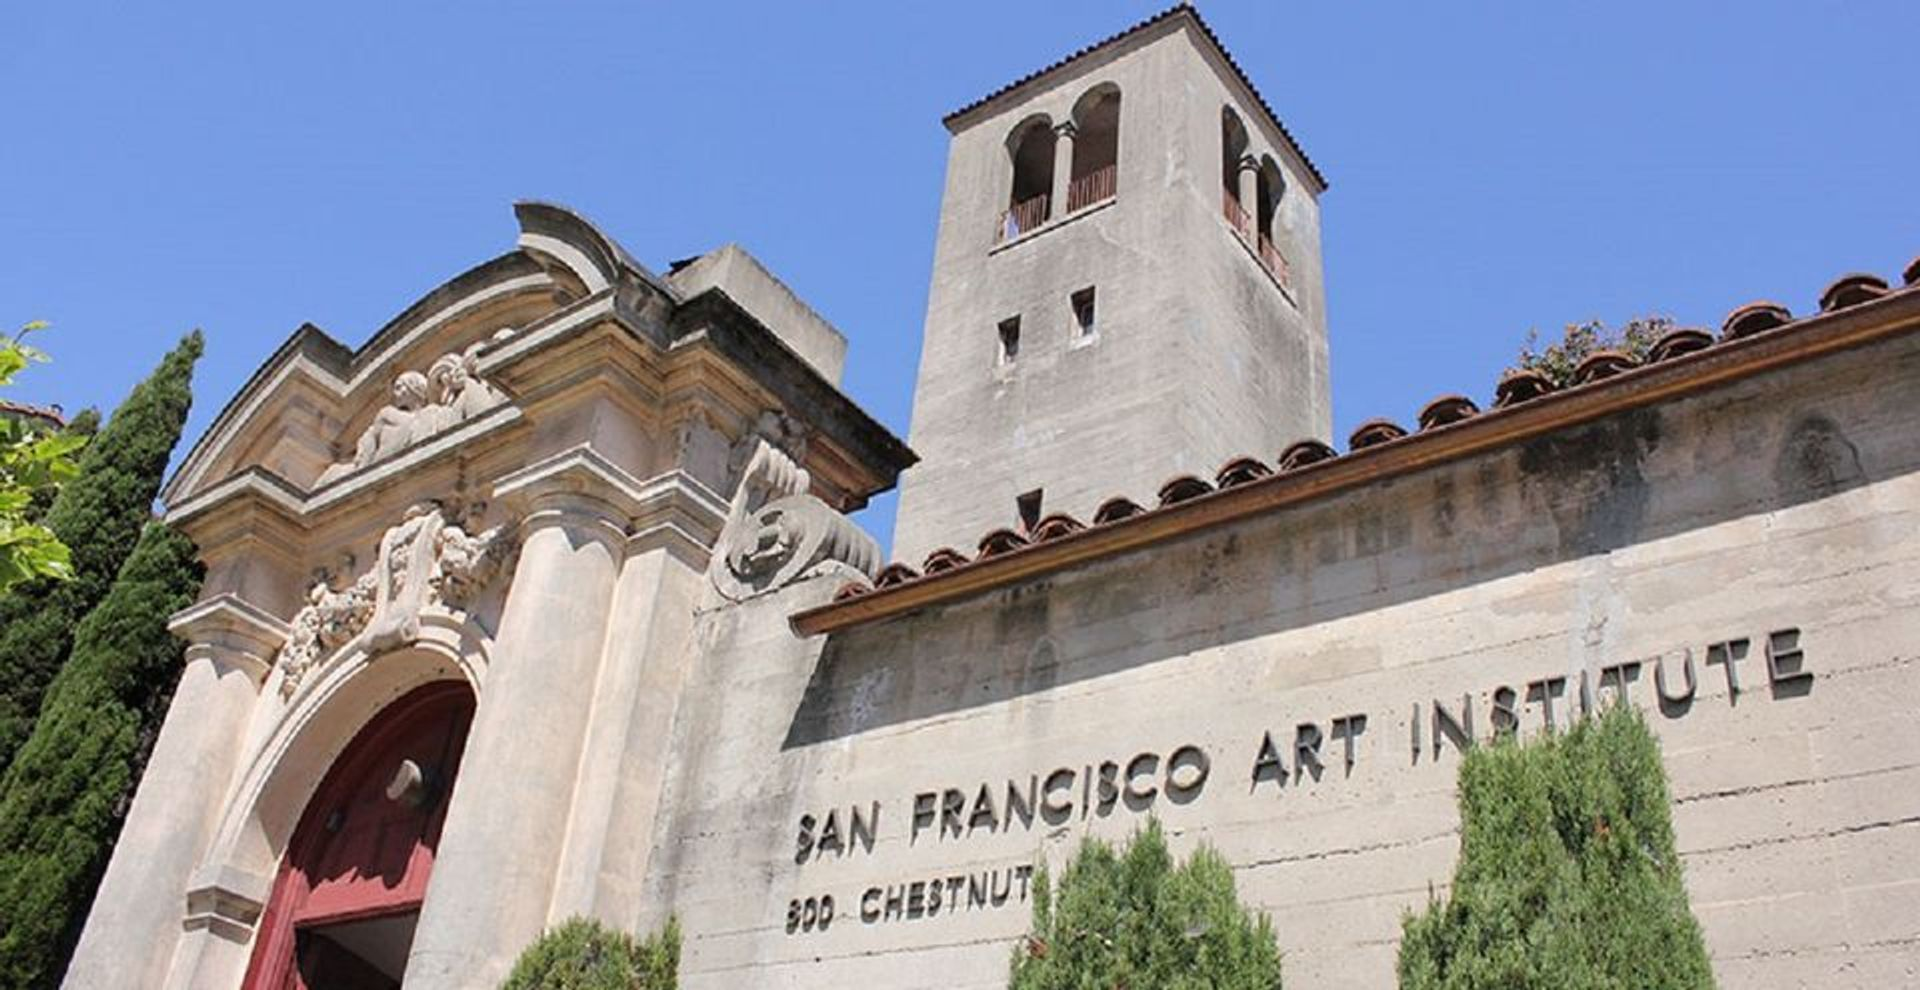 The San Francisco Art Institute nearly closed for good in 2020 Courtesy of bart.gov